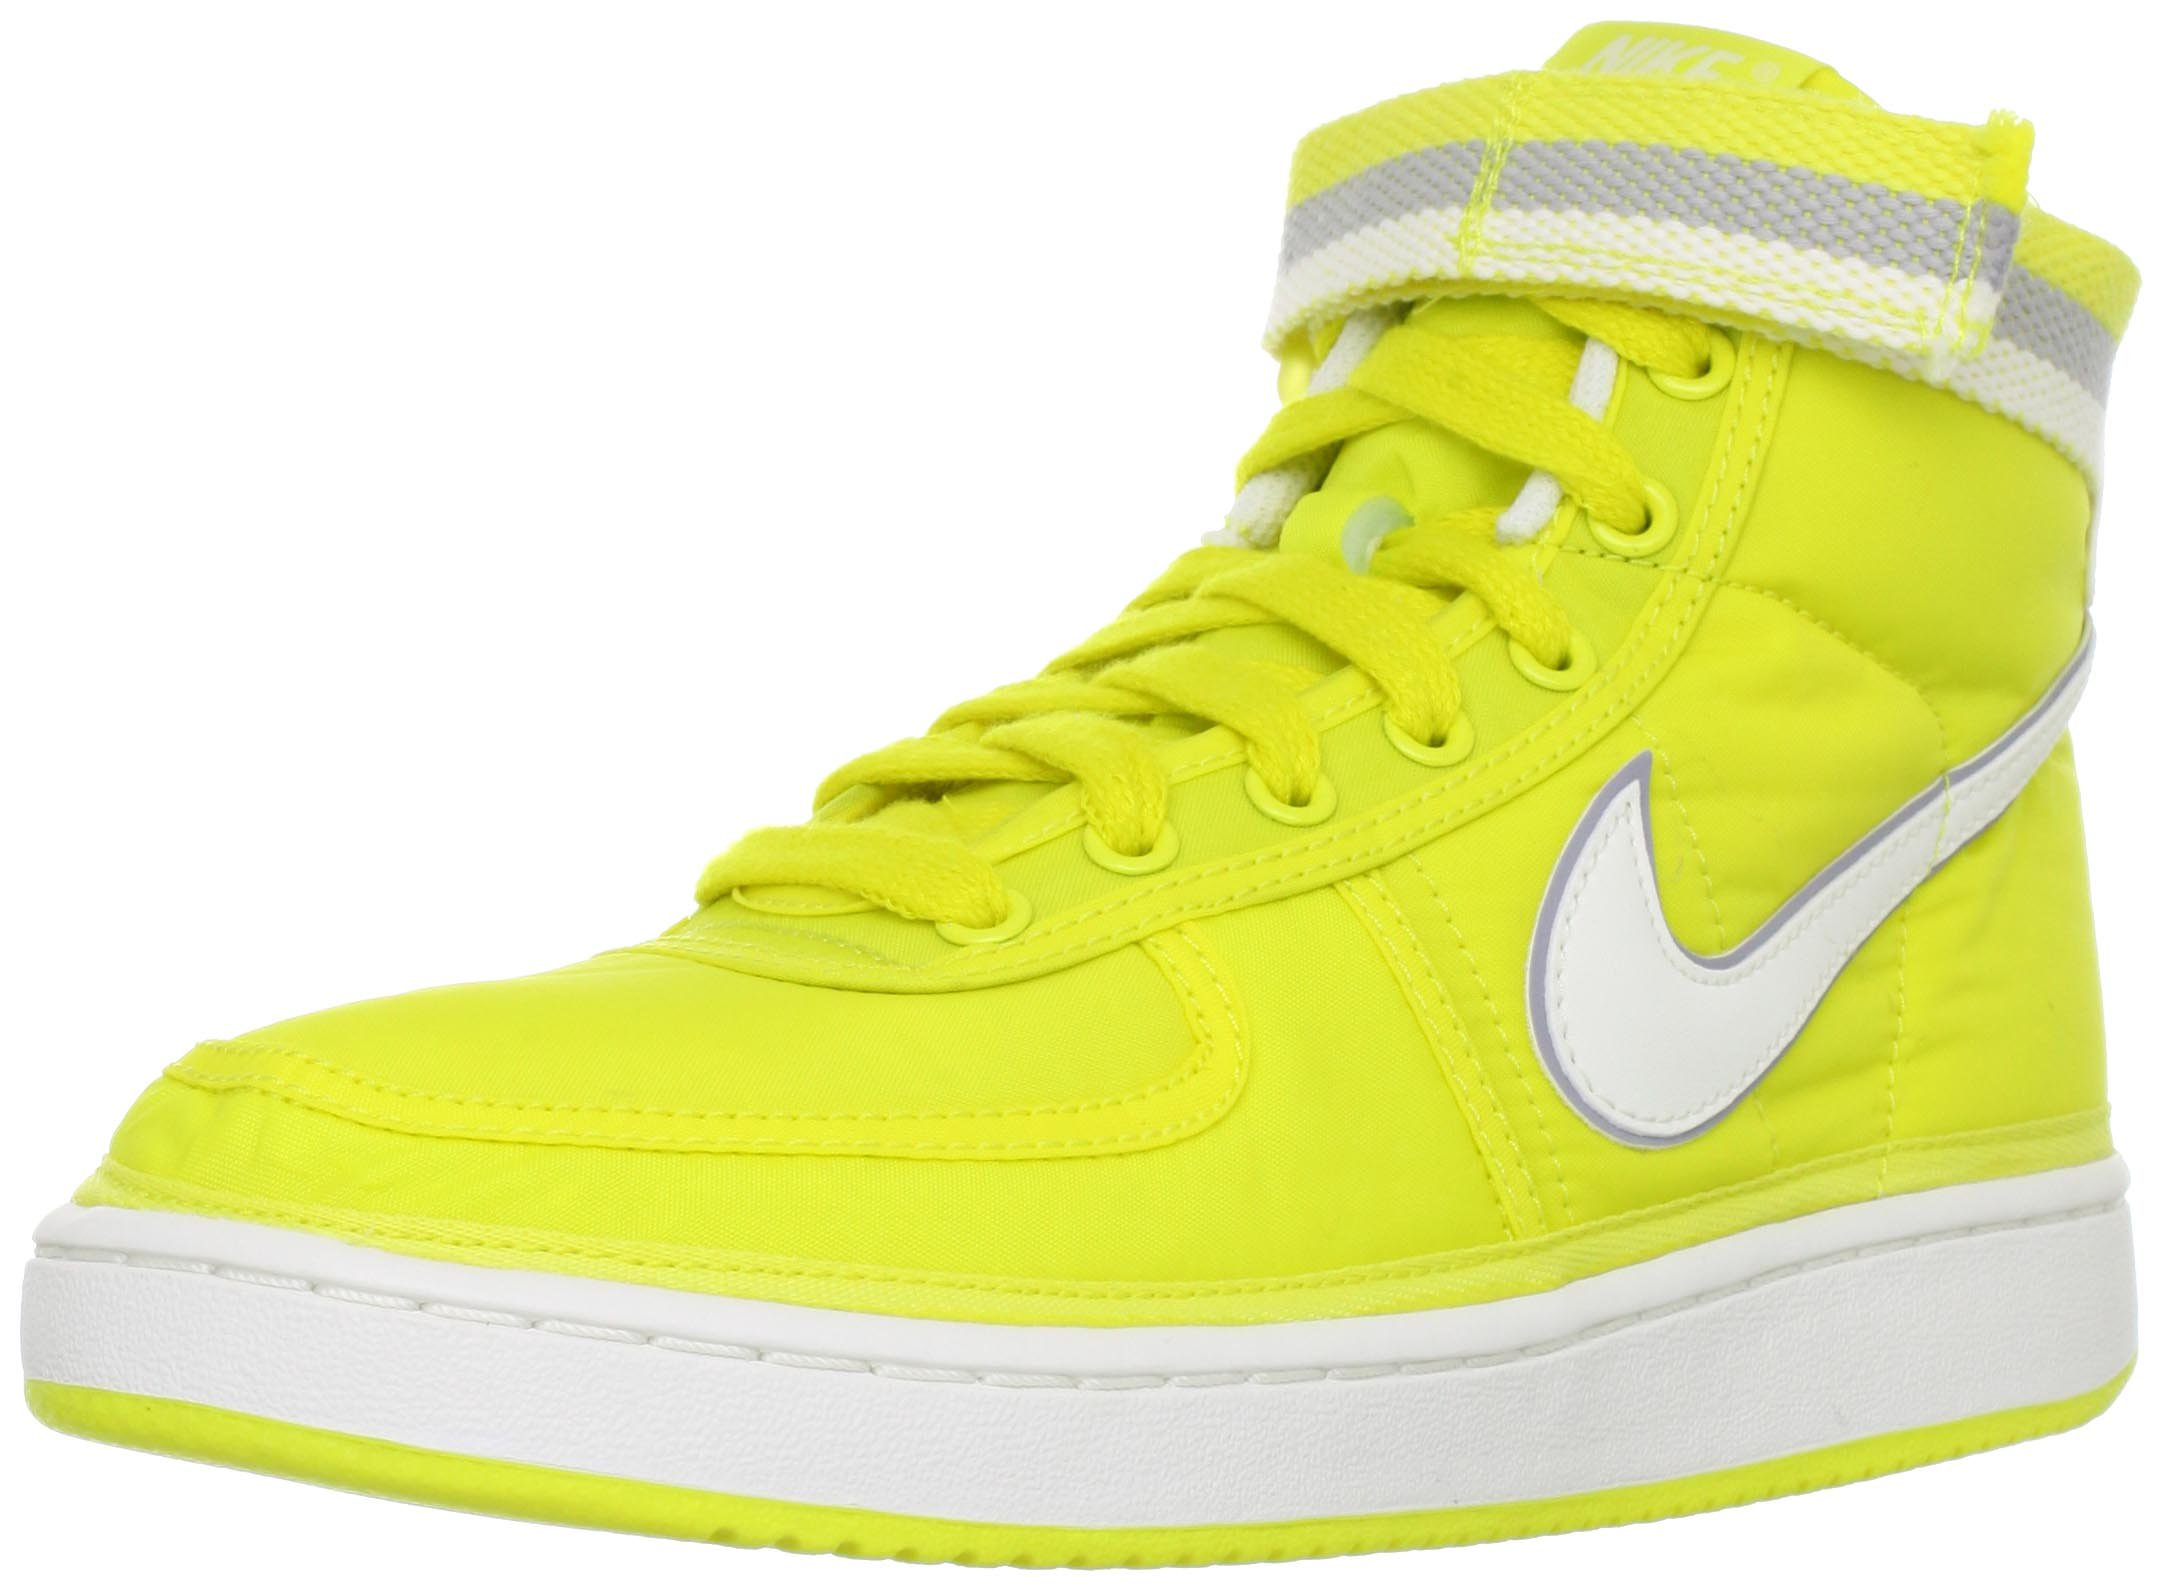 Nike Trainers Mens Vandal Supreme High Vintage Sonic Yellow